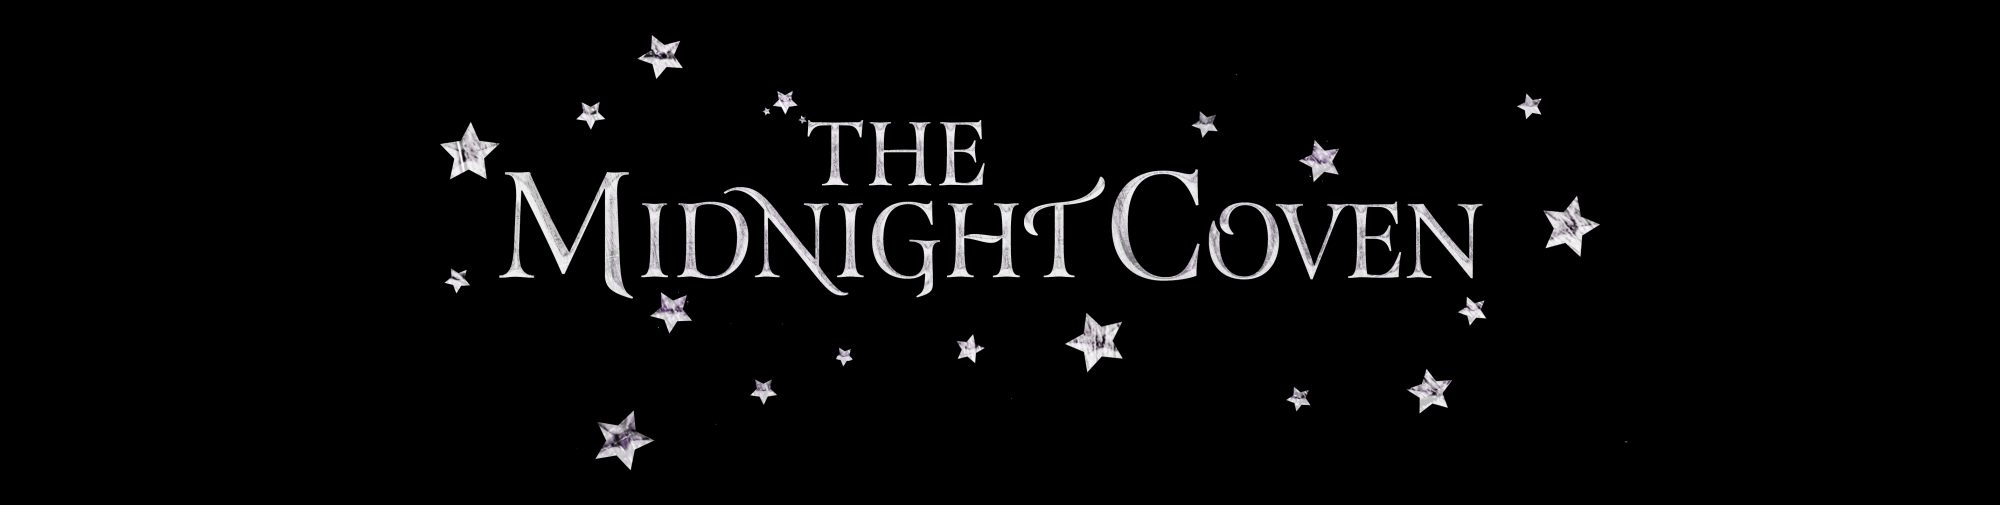 The Midnight Coven